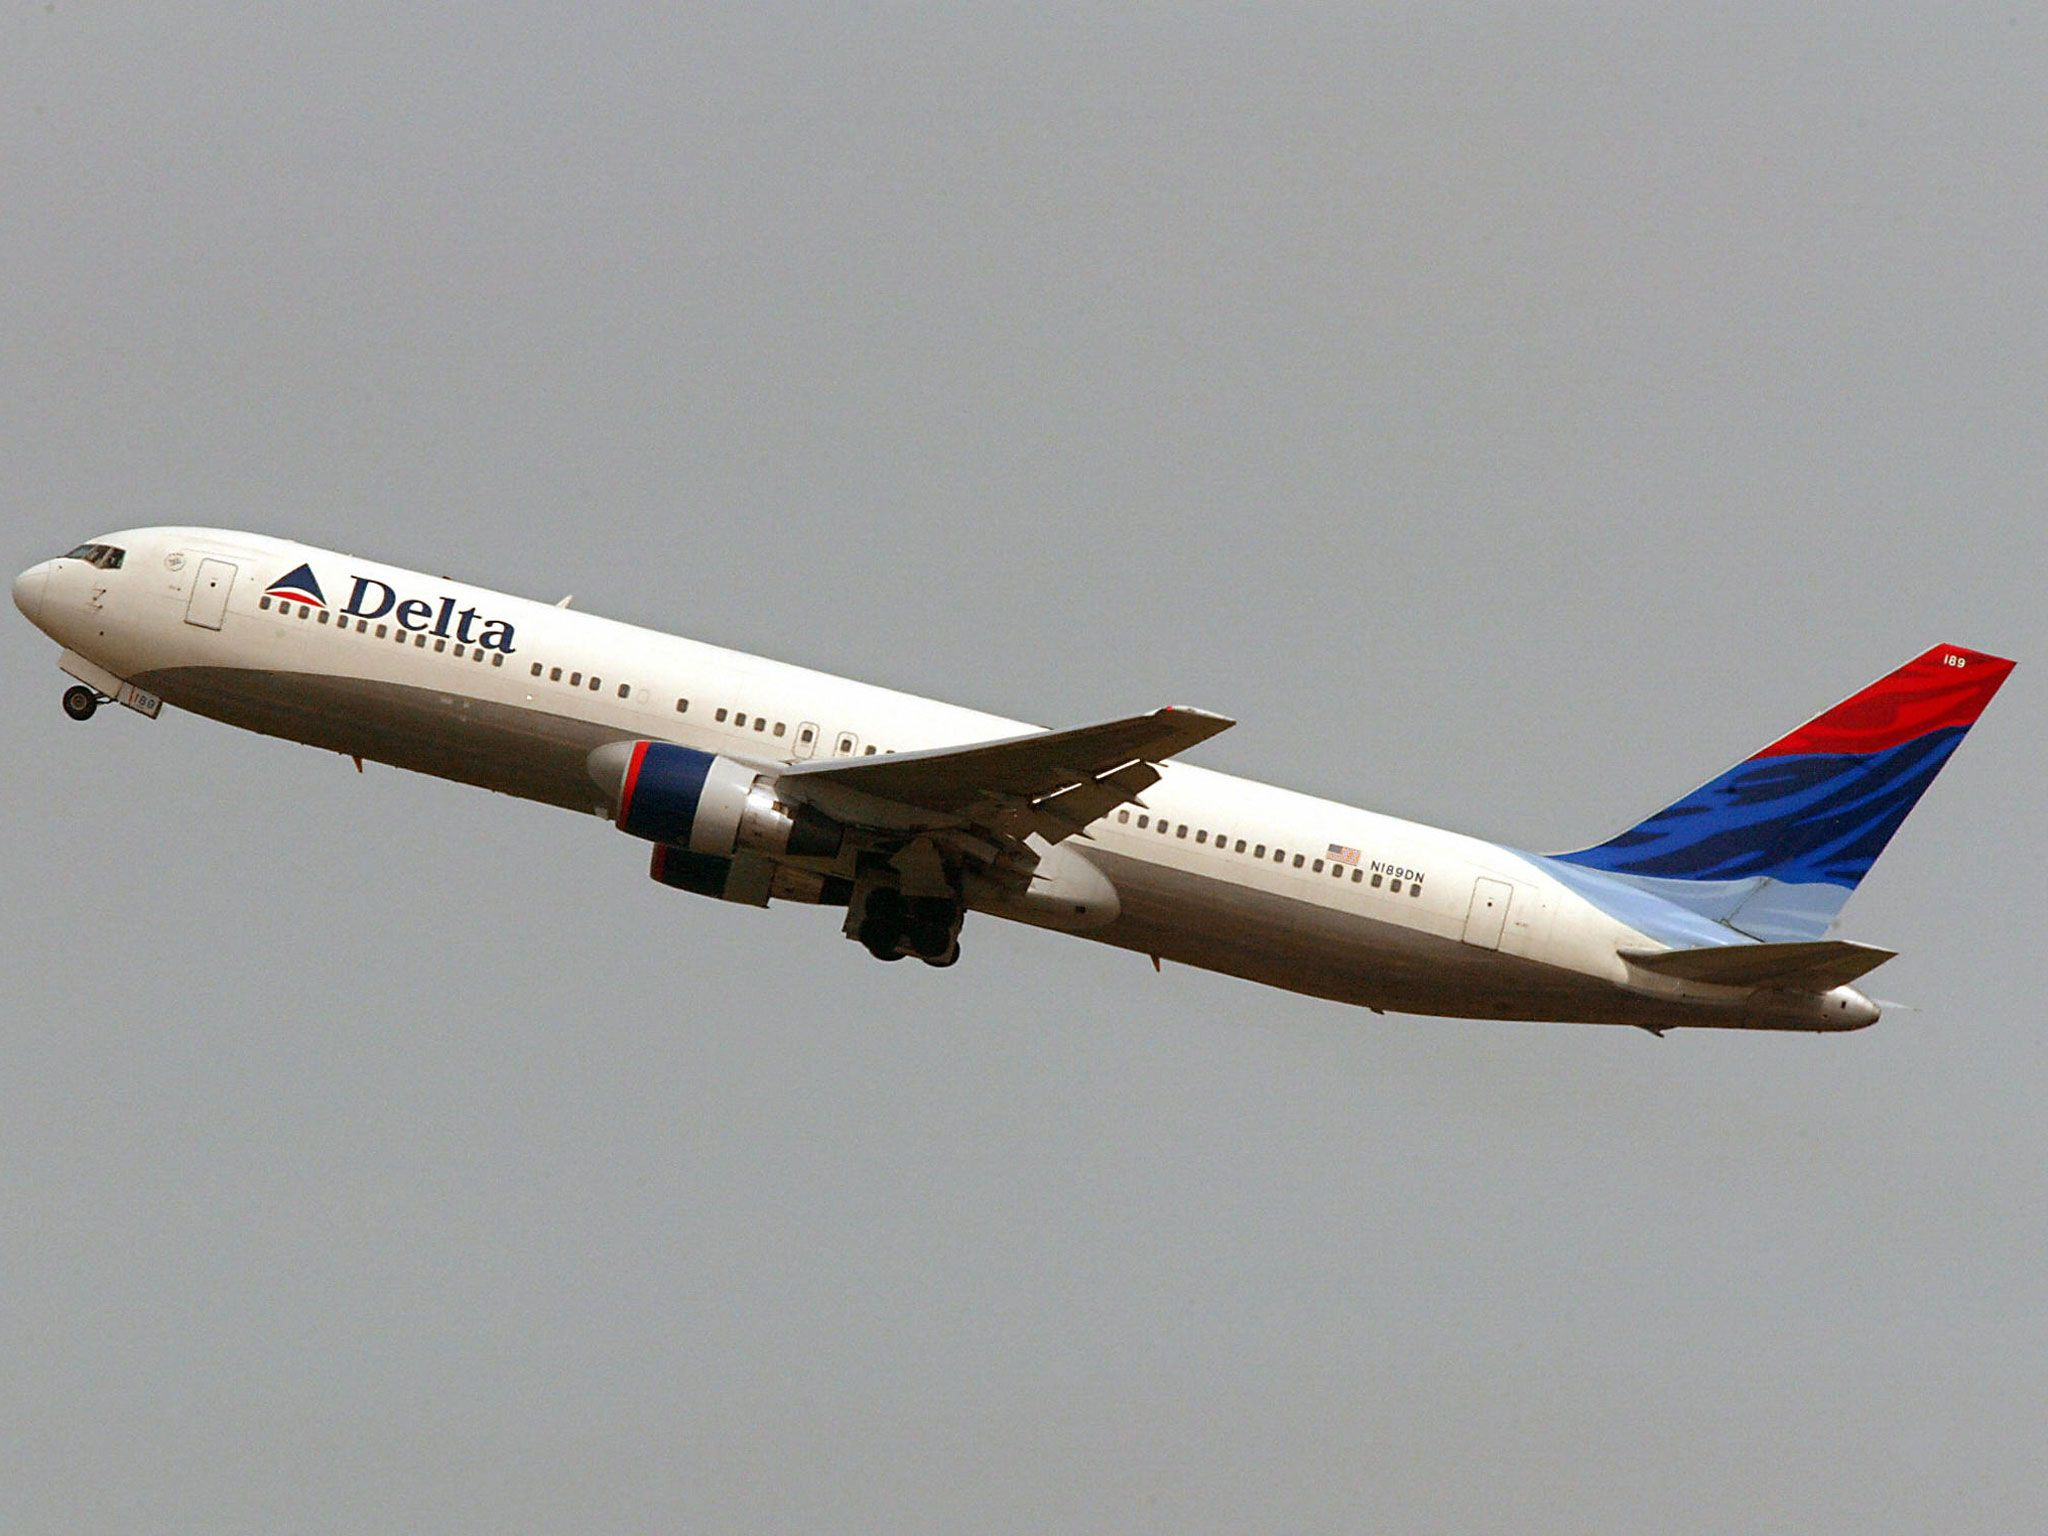 Delta has grounded all flights after 'system outage